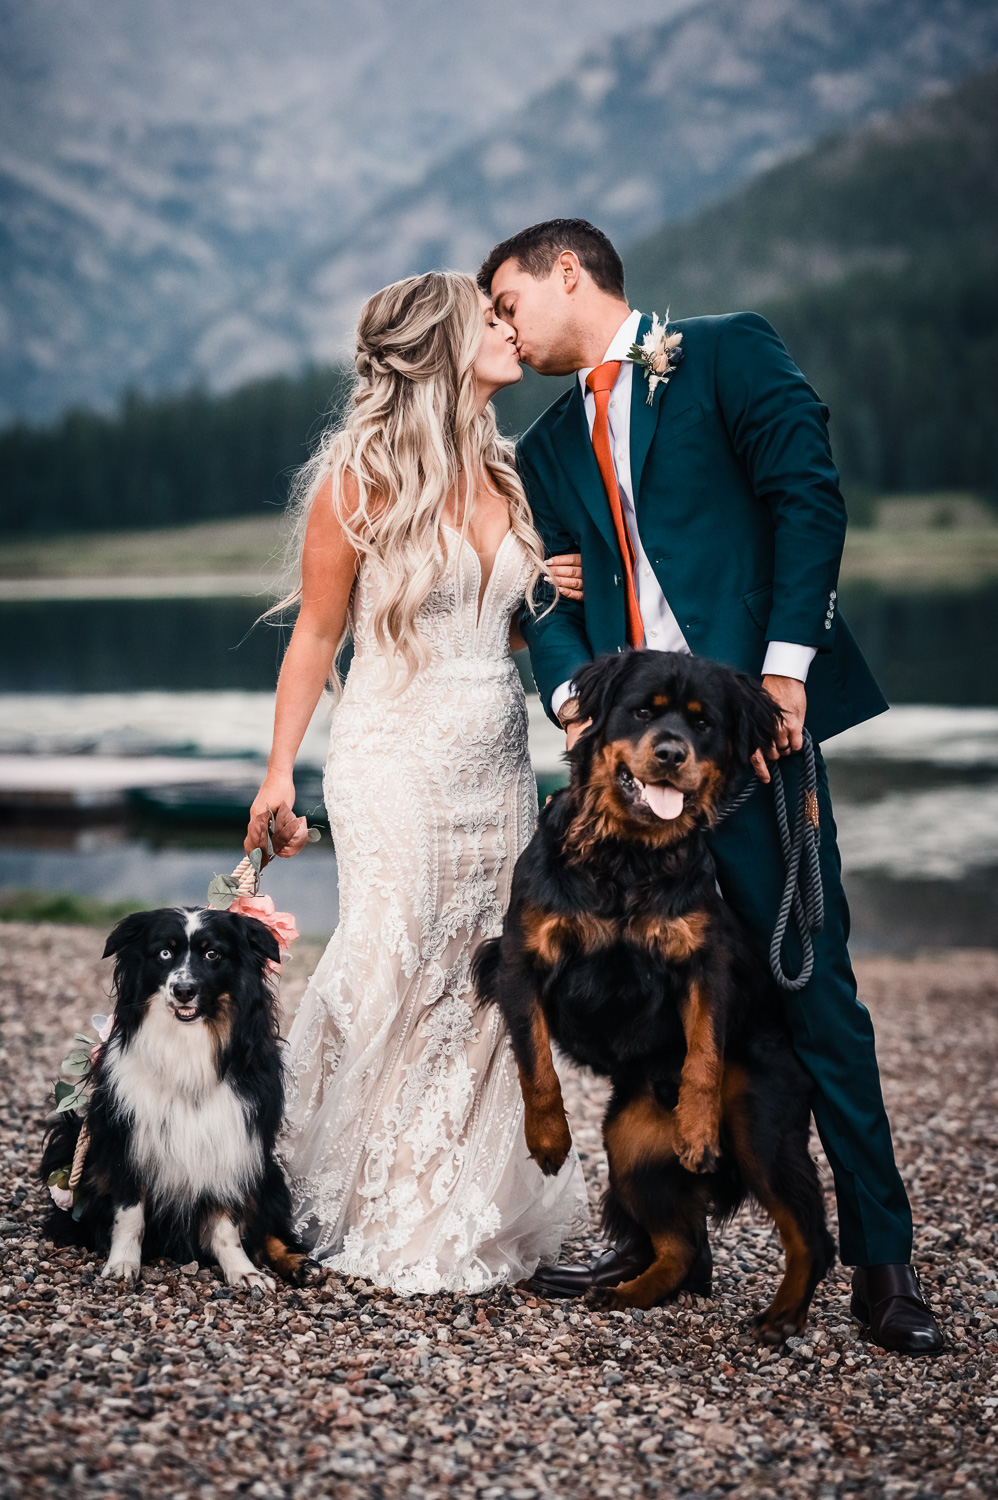 Bride and Groom kiss while their dogs jump and look at camera at Piney River Ranch